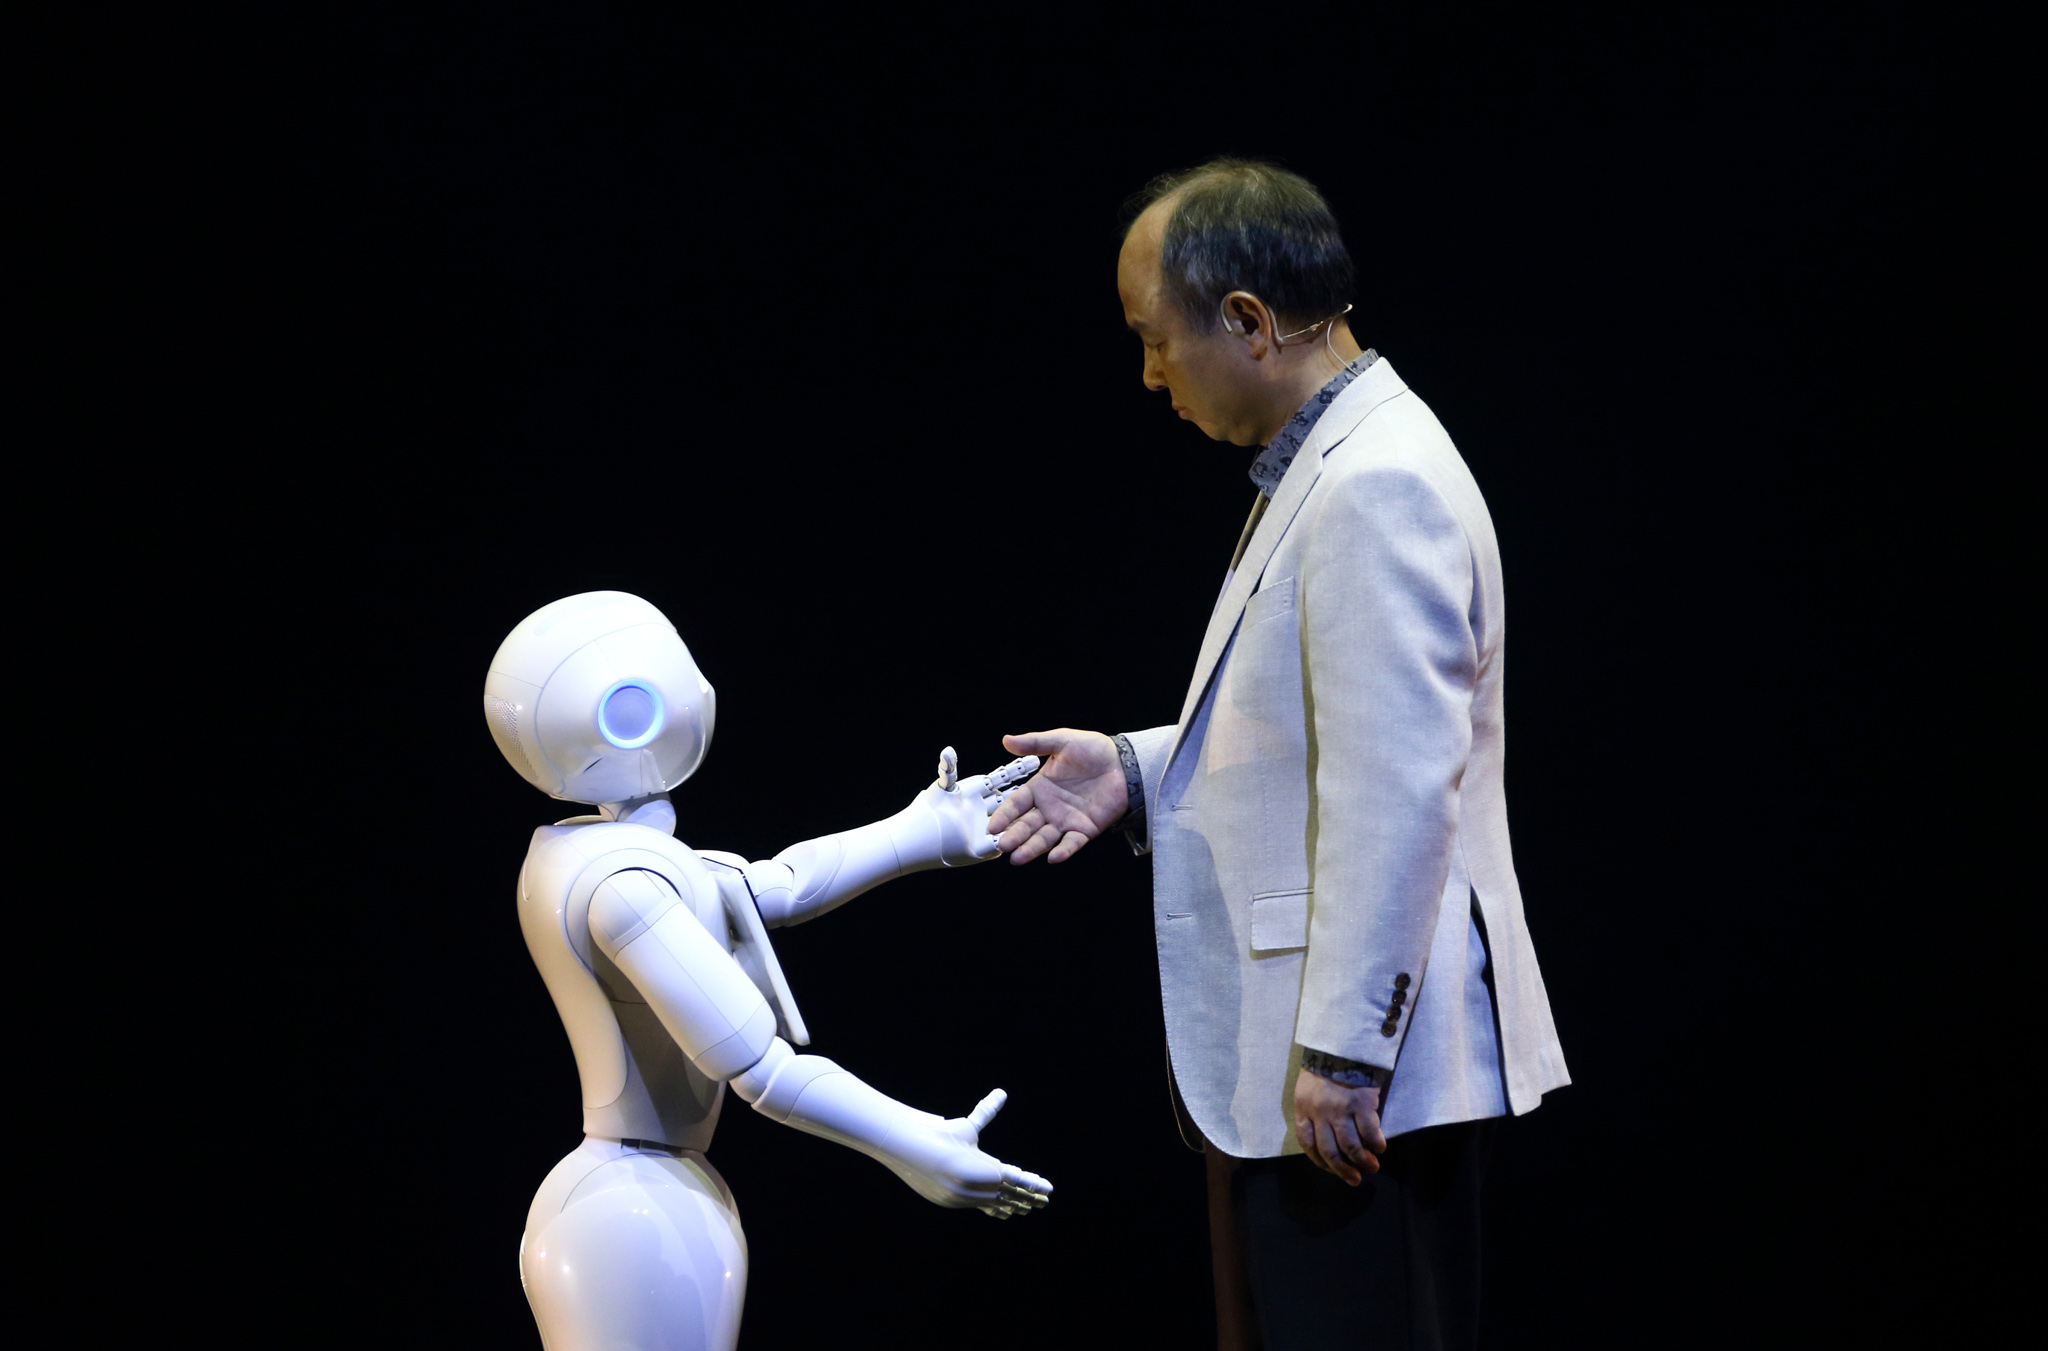 Softbank Chief Executive Officer Masayoshi Son News Conference...Billionaire Masayoshi Son, chairman and chief executive officer of SoftBank Corp., right, offers his hand to a human-like robot called Pepper, developed by the company's Aldebaran Robotics unit, during a news conference in Urayasu, Chiba Prefecture, Japan, on Thursday, June 5, 2014. SoftBank plans to sell interactive robots for households from February next year. Photographer: Tomohiro Ohsumi/Bloomberg *** Local Caption *** Masayoshi Son